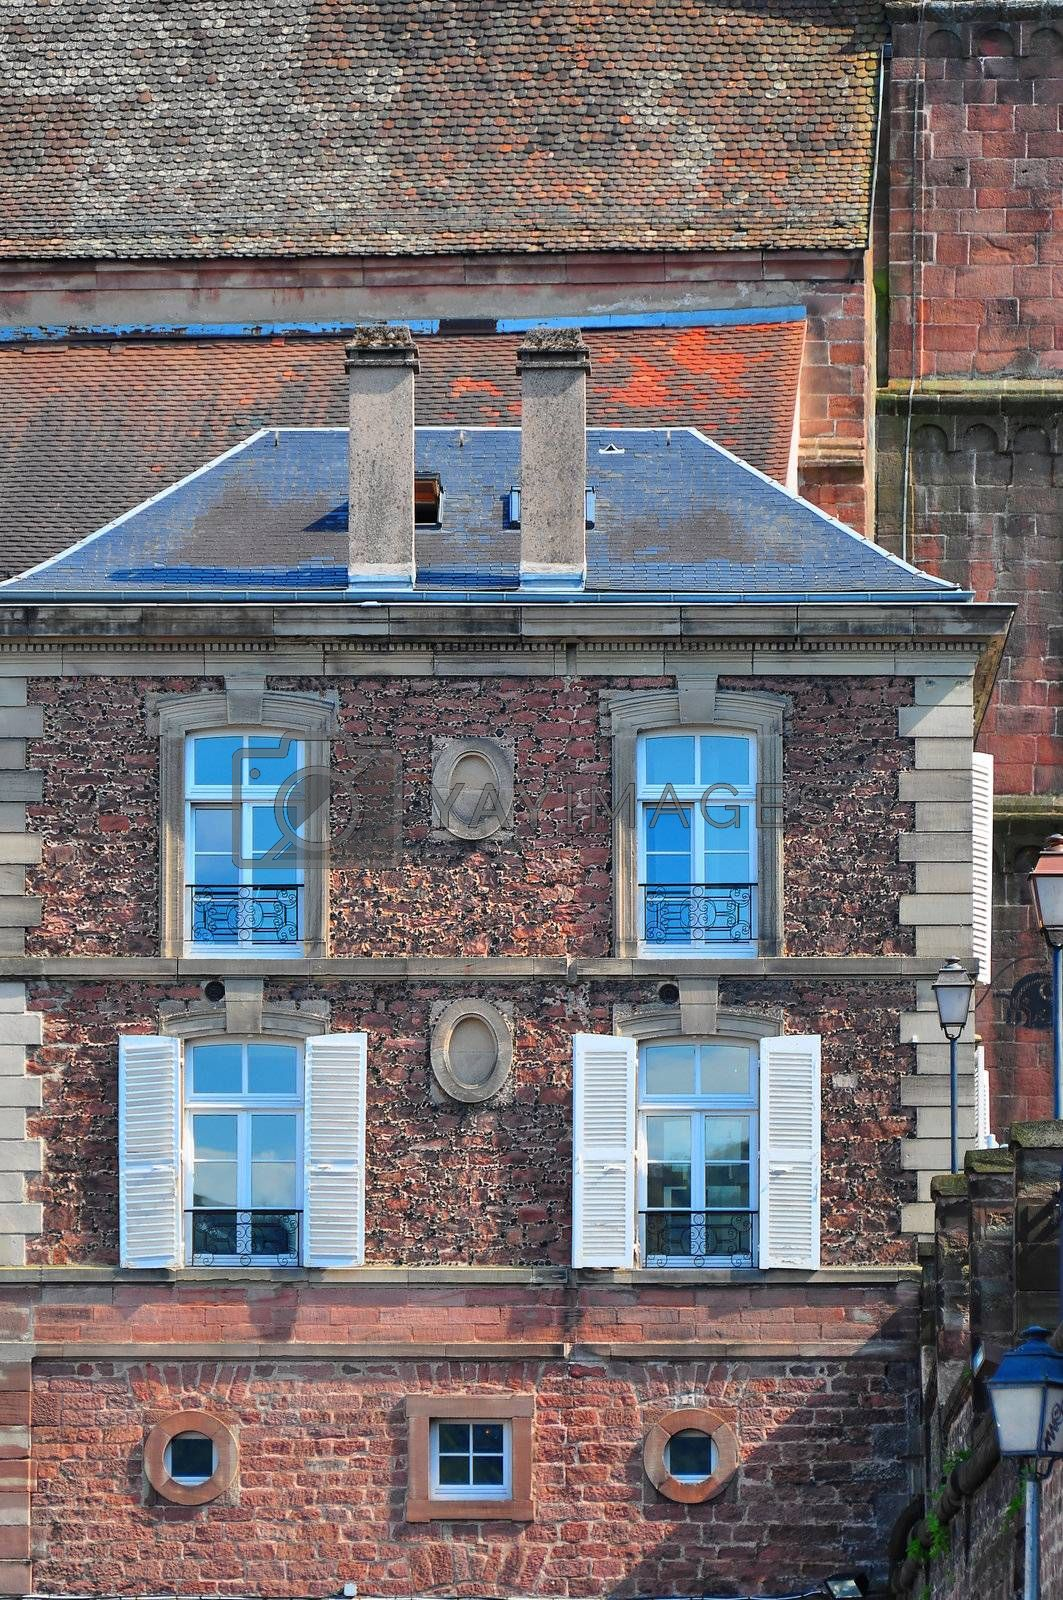 Royalty free image of Saverne view by mpgphoto